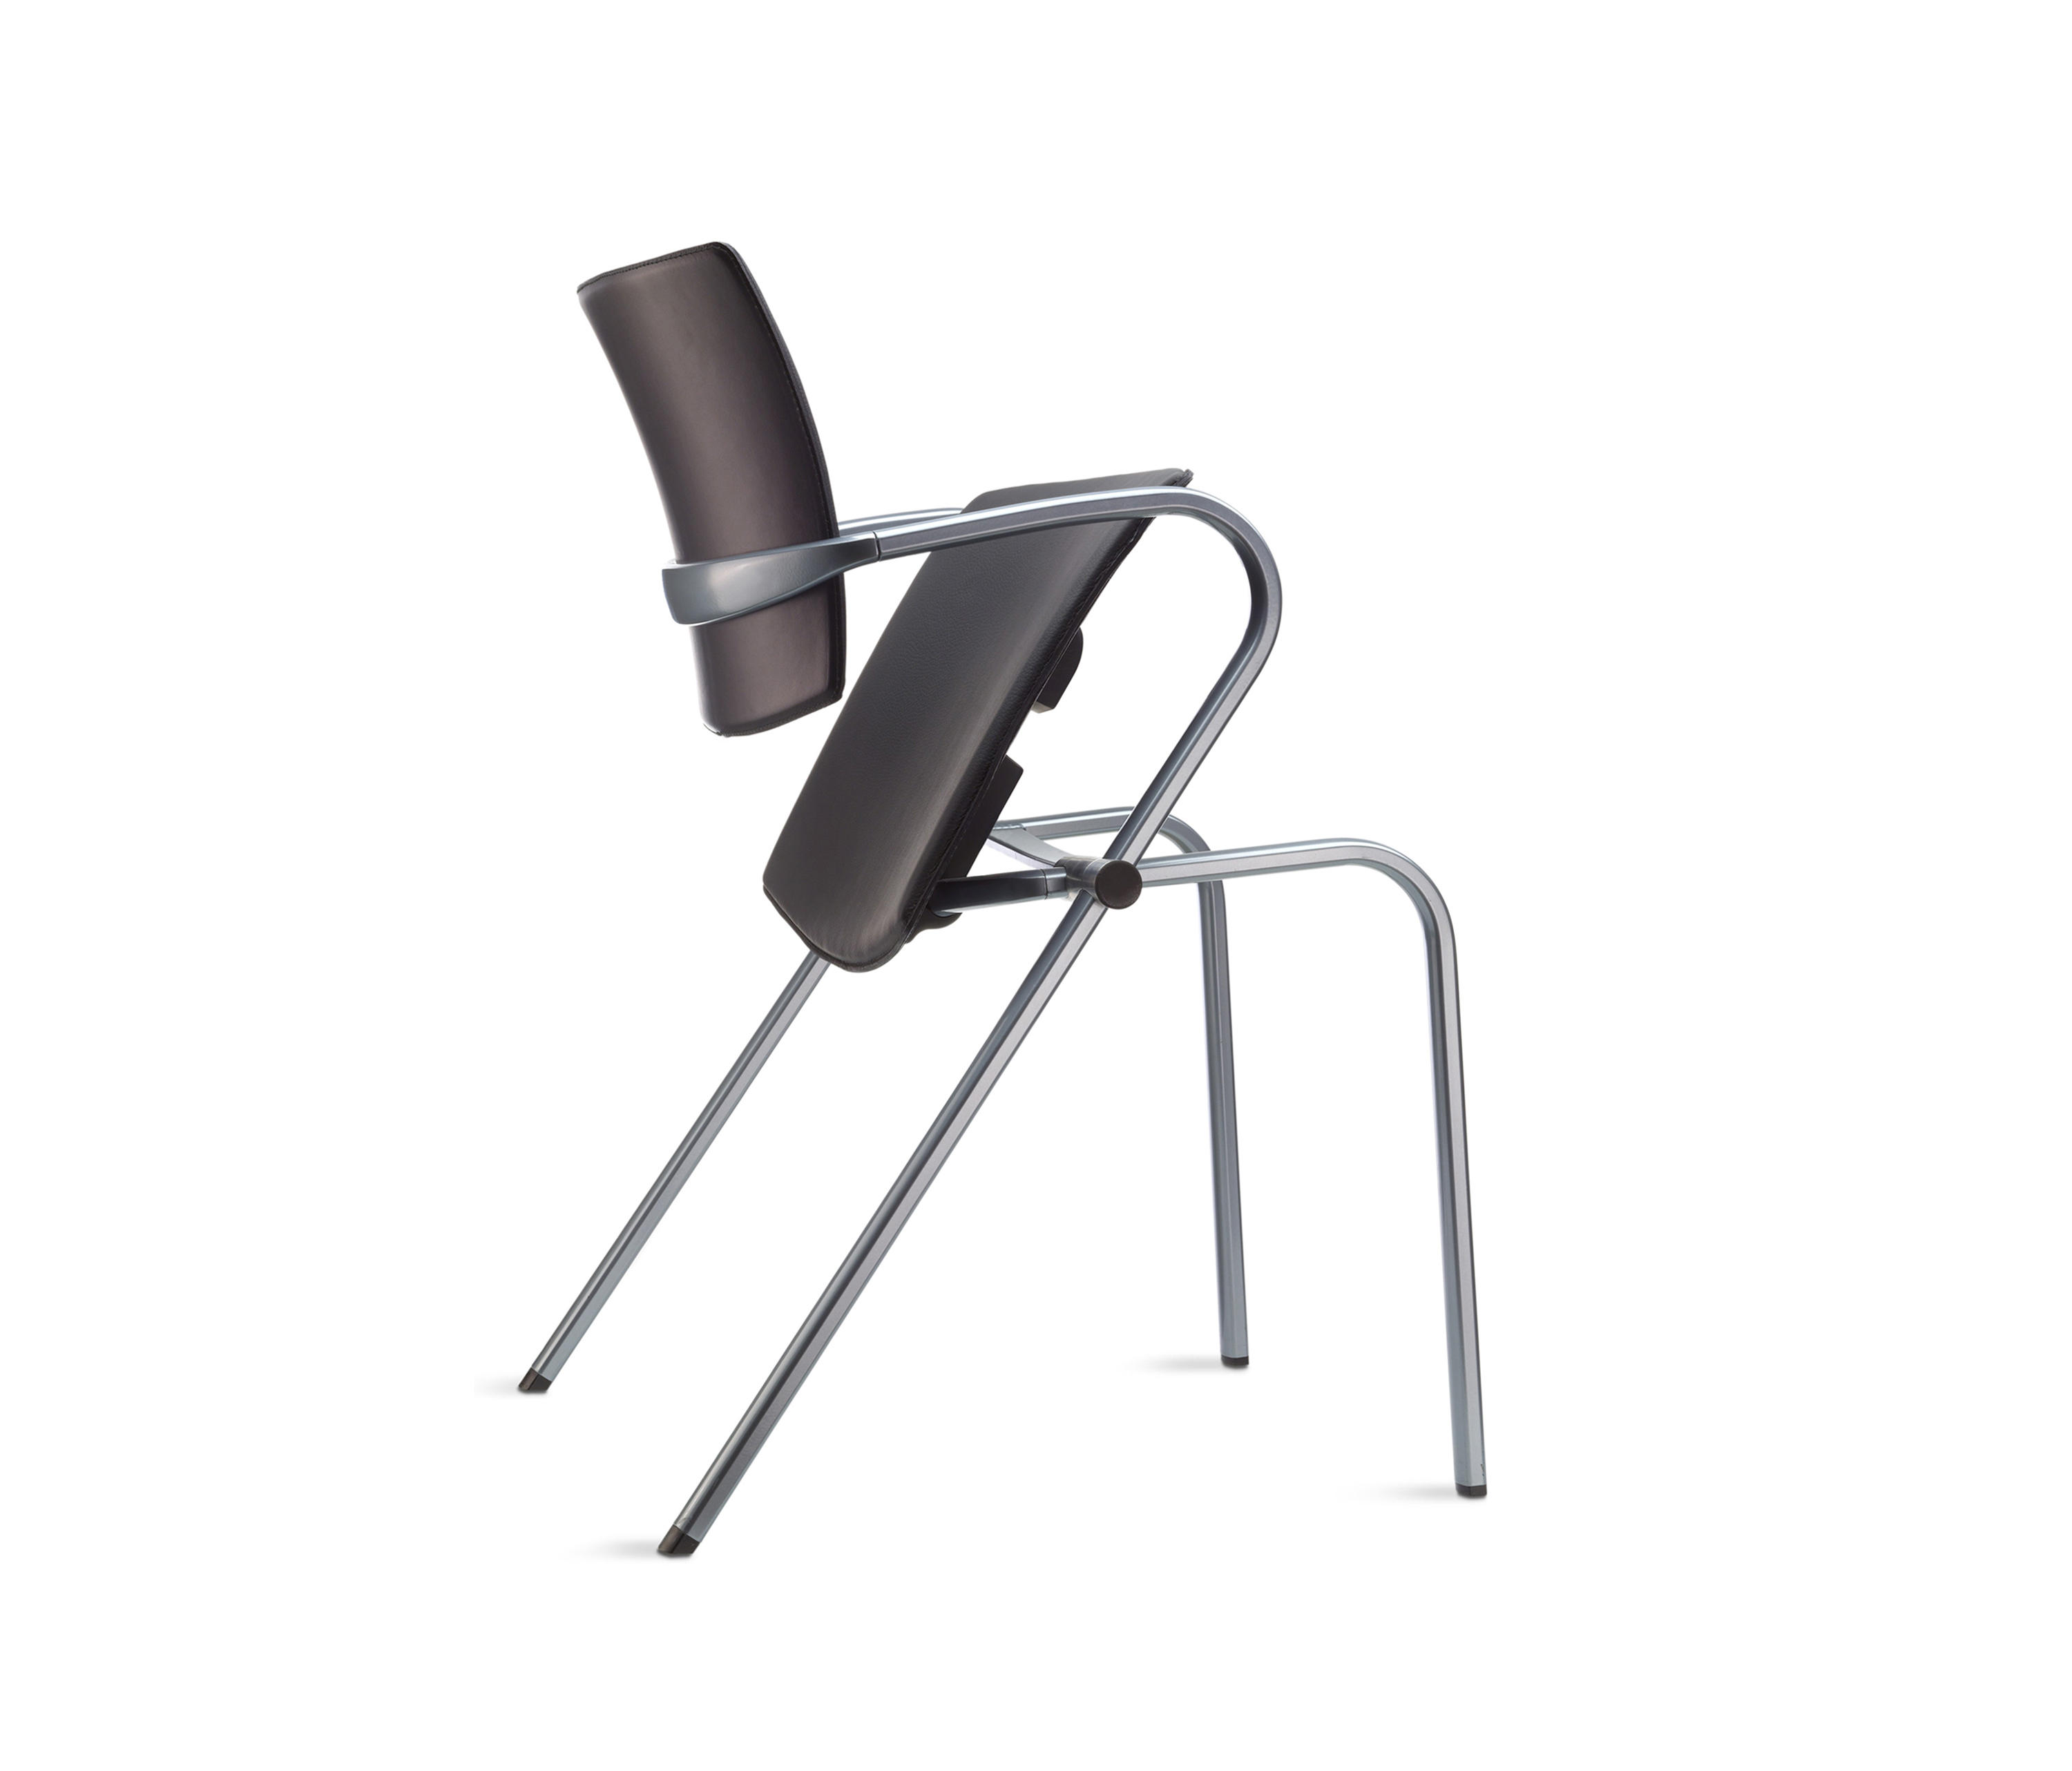 430 Delta Plus by FIGUERAS | Chairs ...  sc 1 st  Architonic & 430 DELTA PLUS - Chairs from FIGUERAS | Architonic